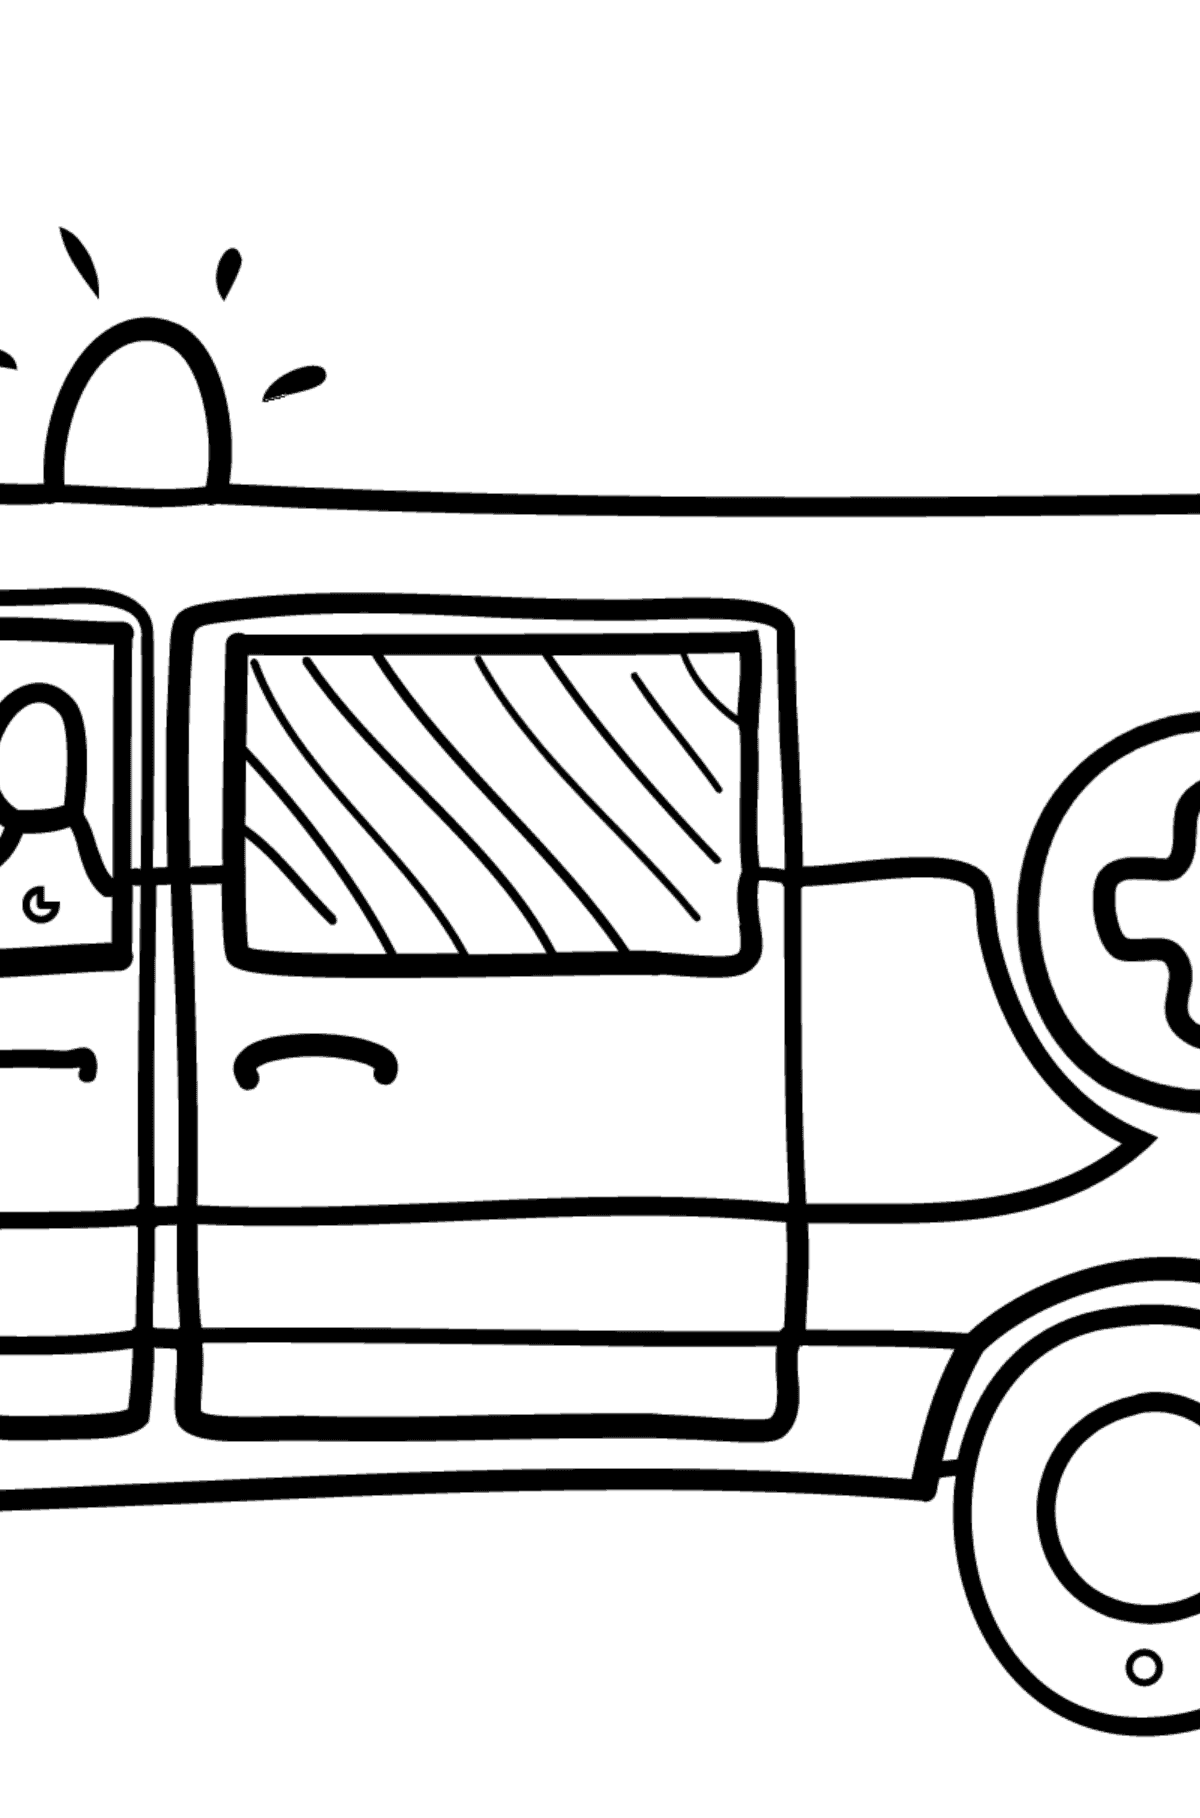 Coloring Page - An Ambulance for Children  - Color by Geometric Shapes